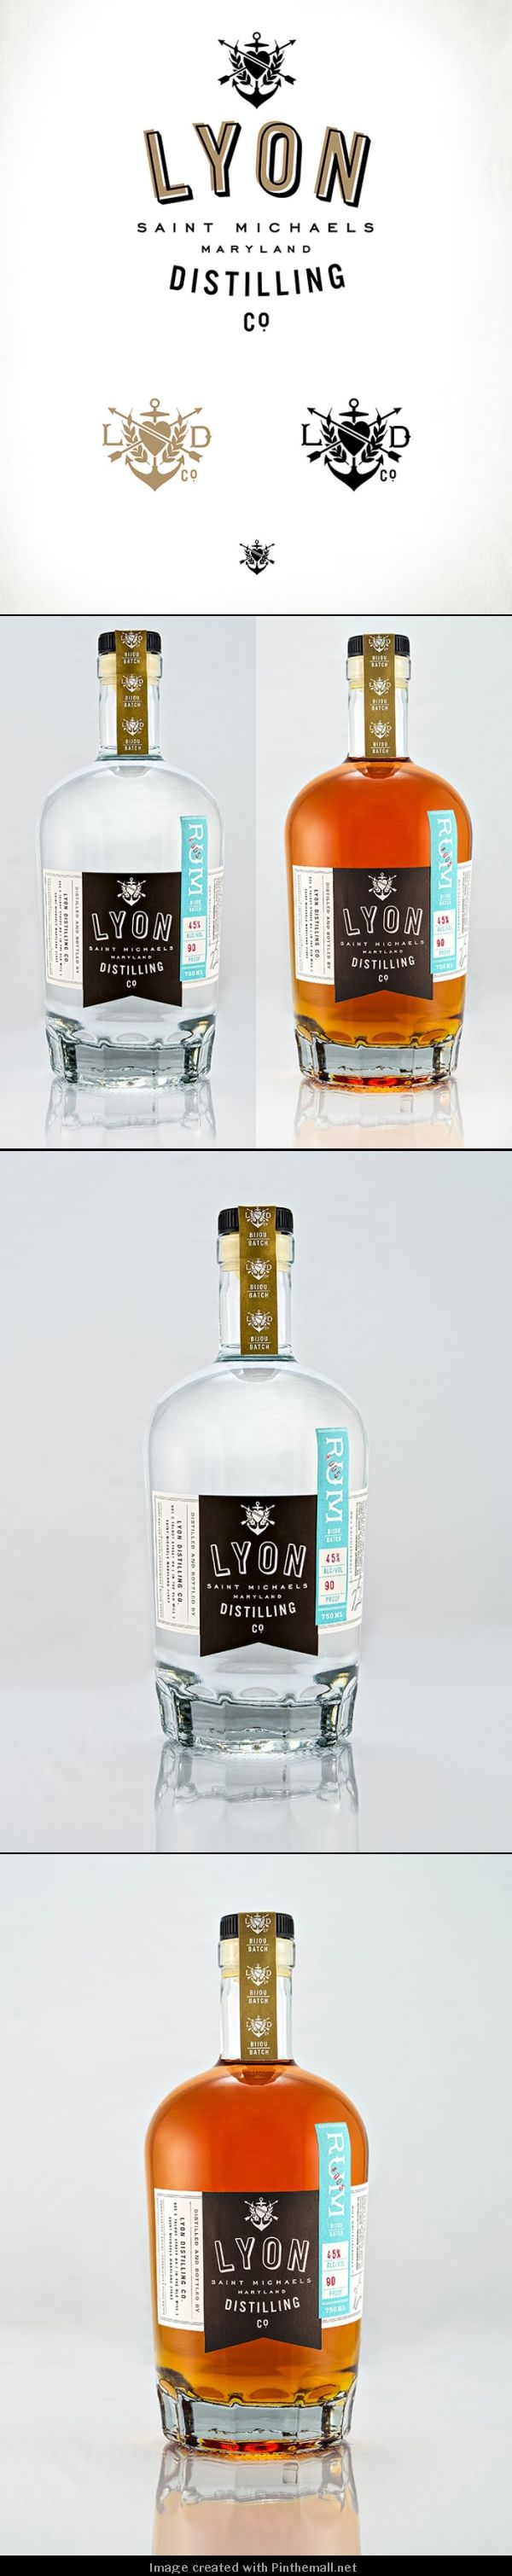 Lyon Distilling Co. Rum Identity and Packaging